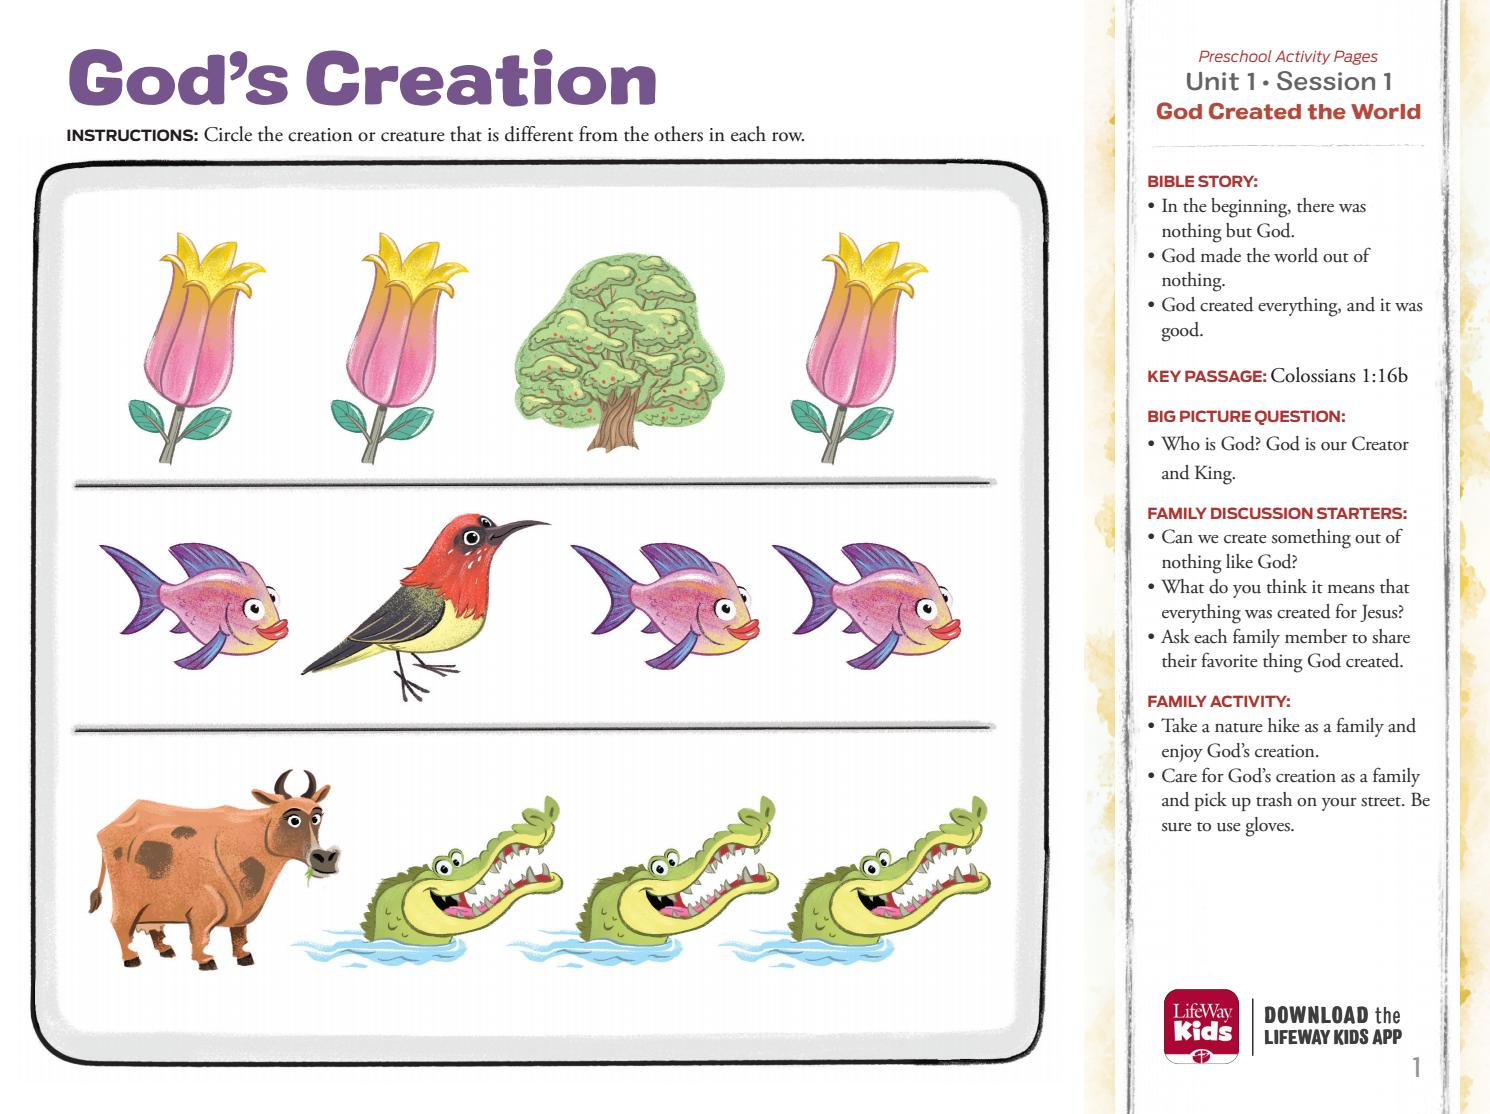 The Gospel Project for Kids: Preschool Activity Pages - Sample